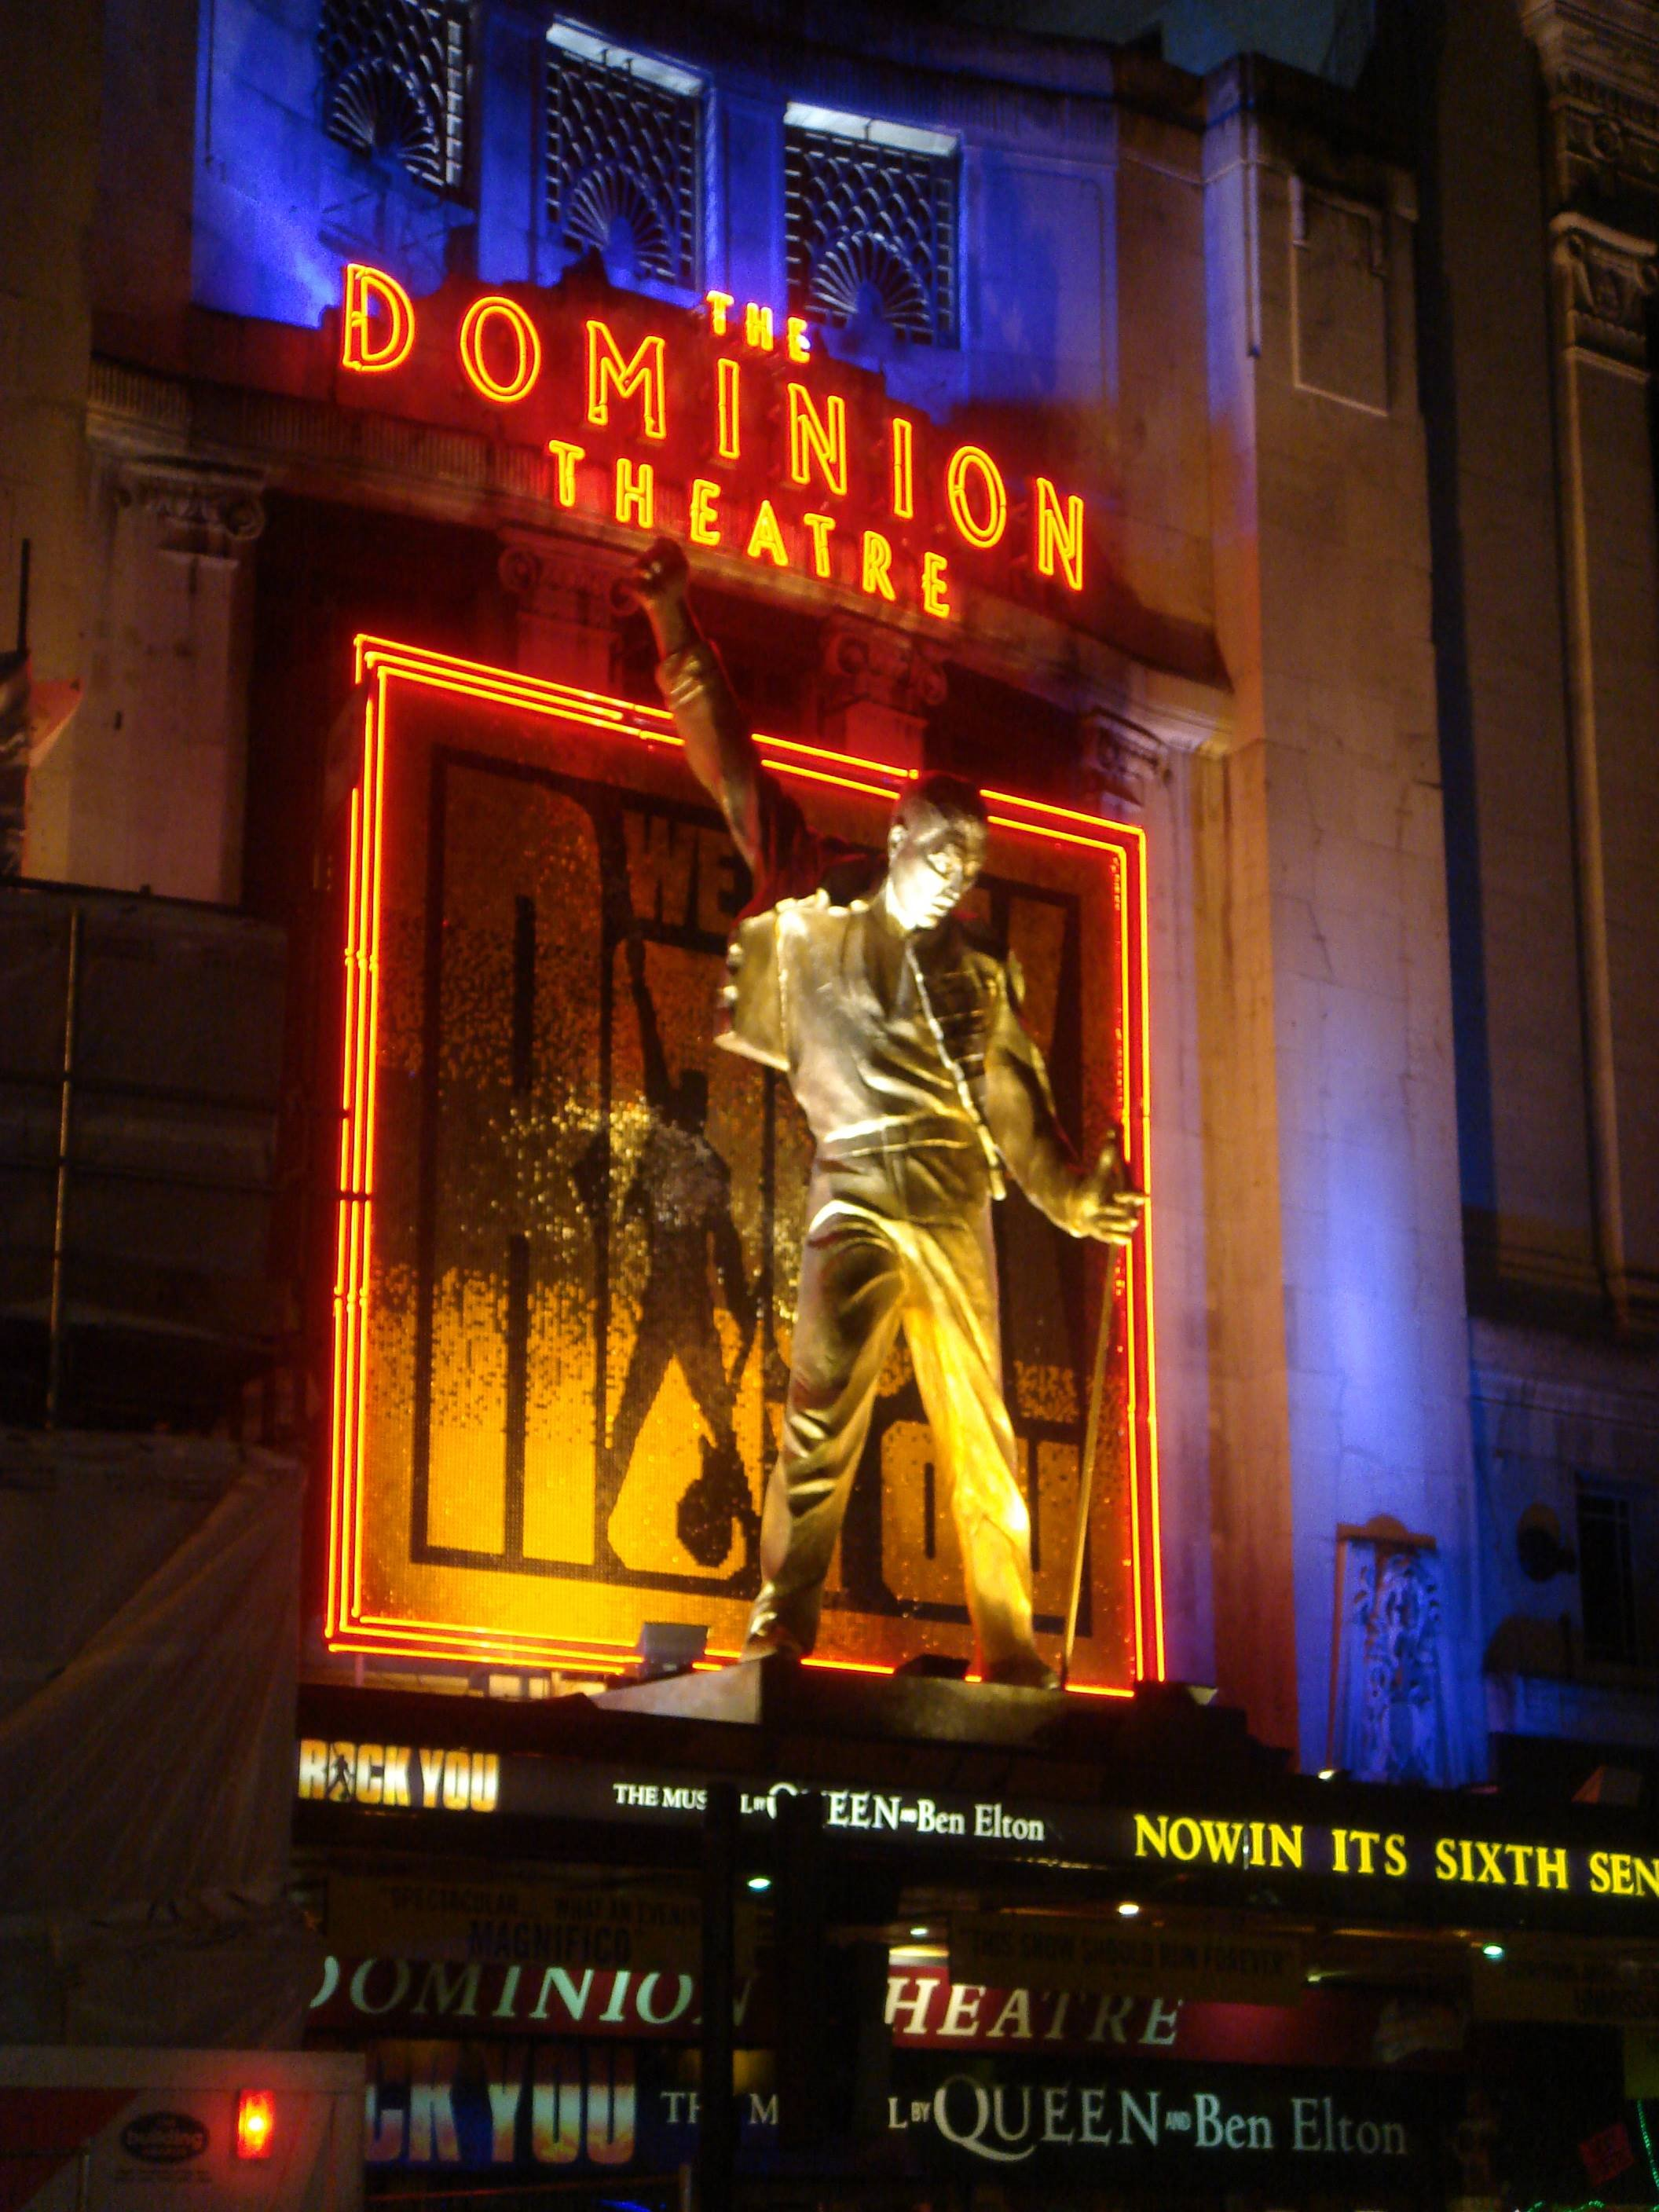 The Dominon Theatre logo